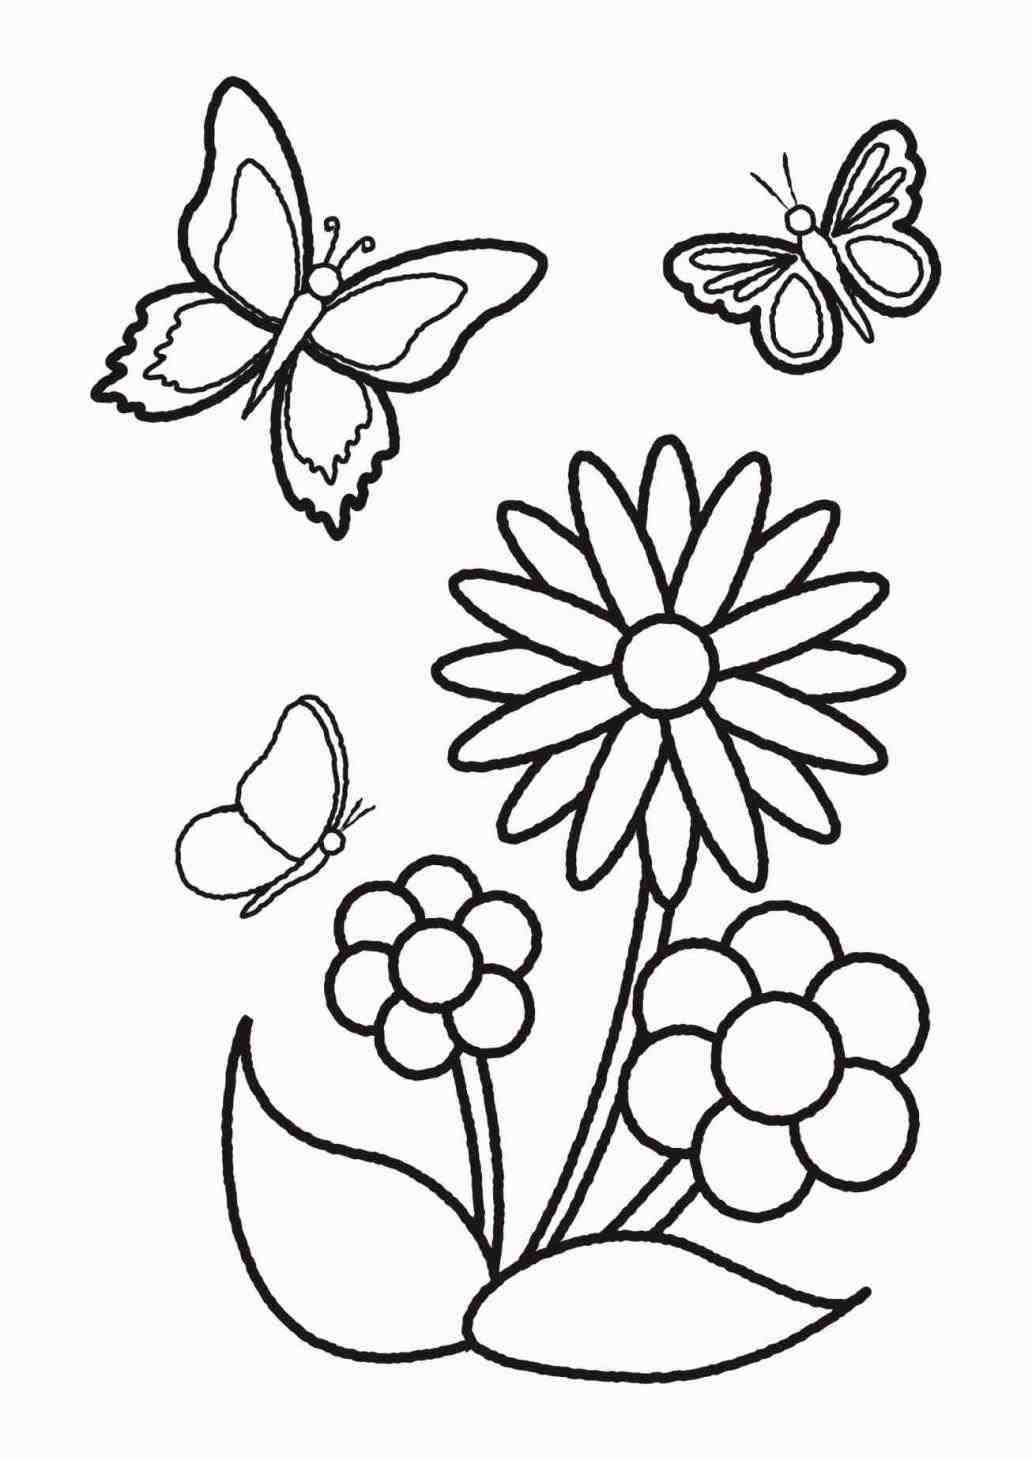 how to draw a lily how to draw a lily draw lily free transparent png lily draw to a how